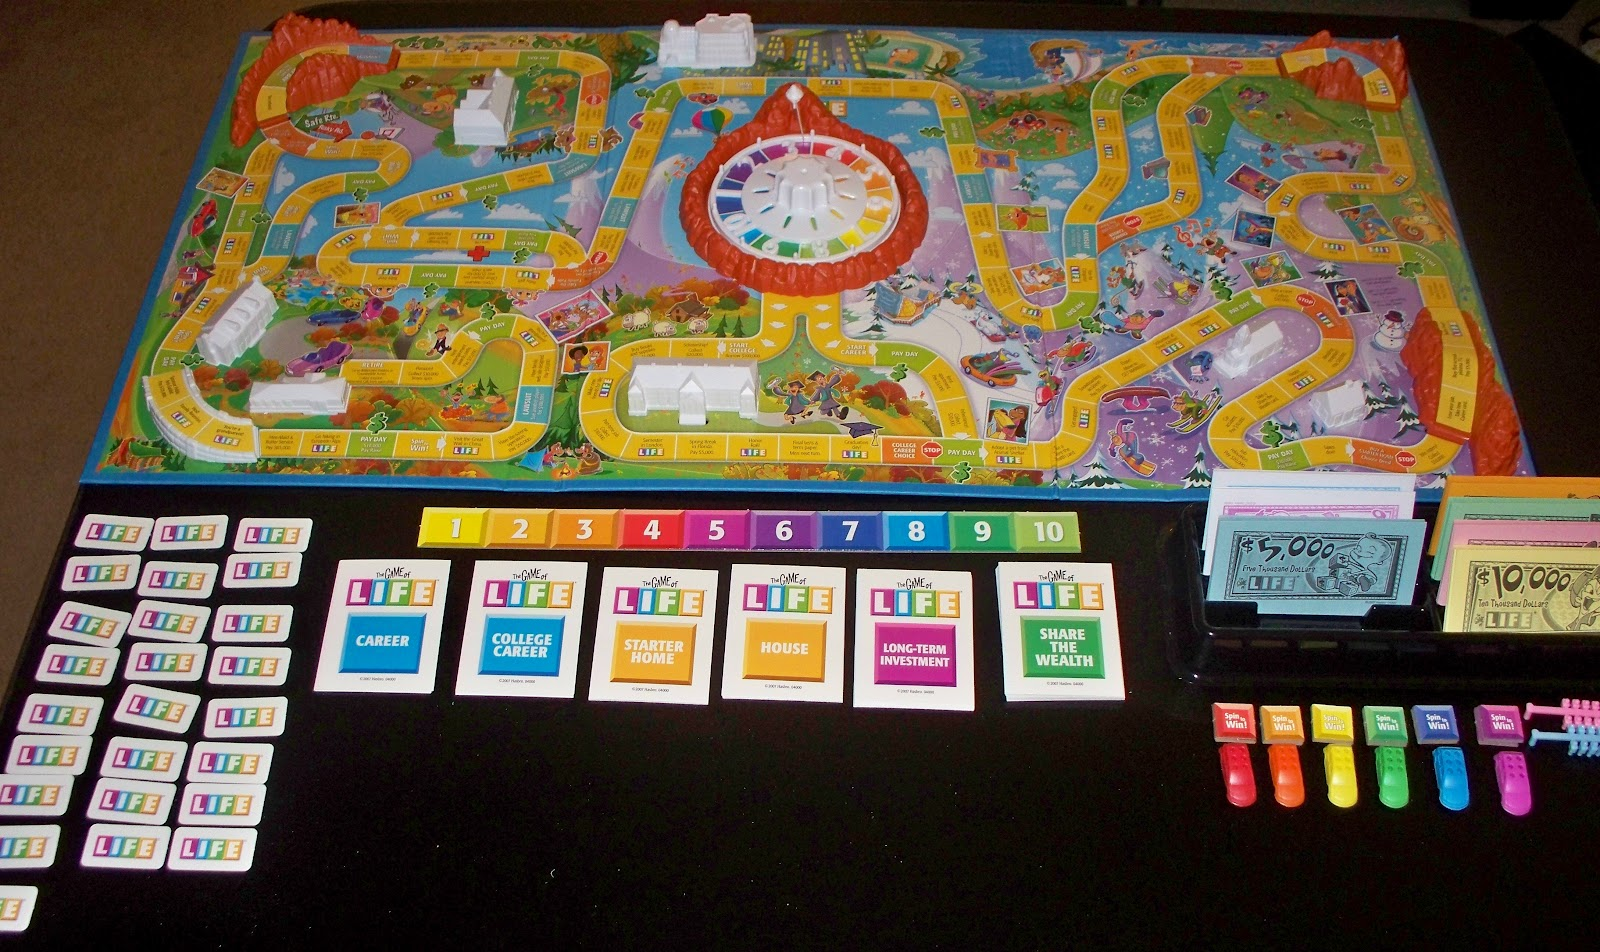 Life Game Board Spaces A New Leaf: The Gaming...